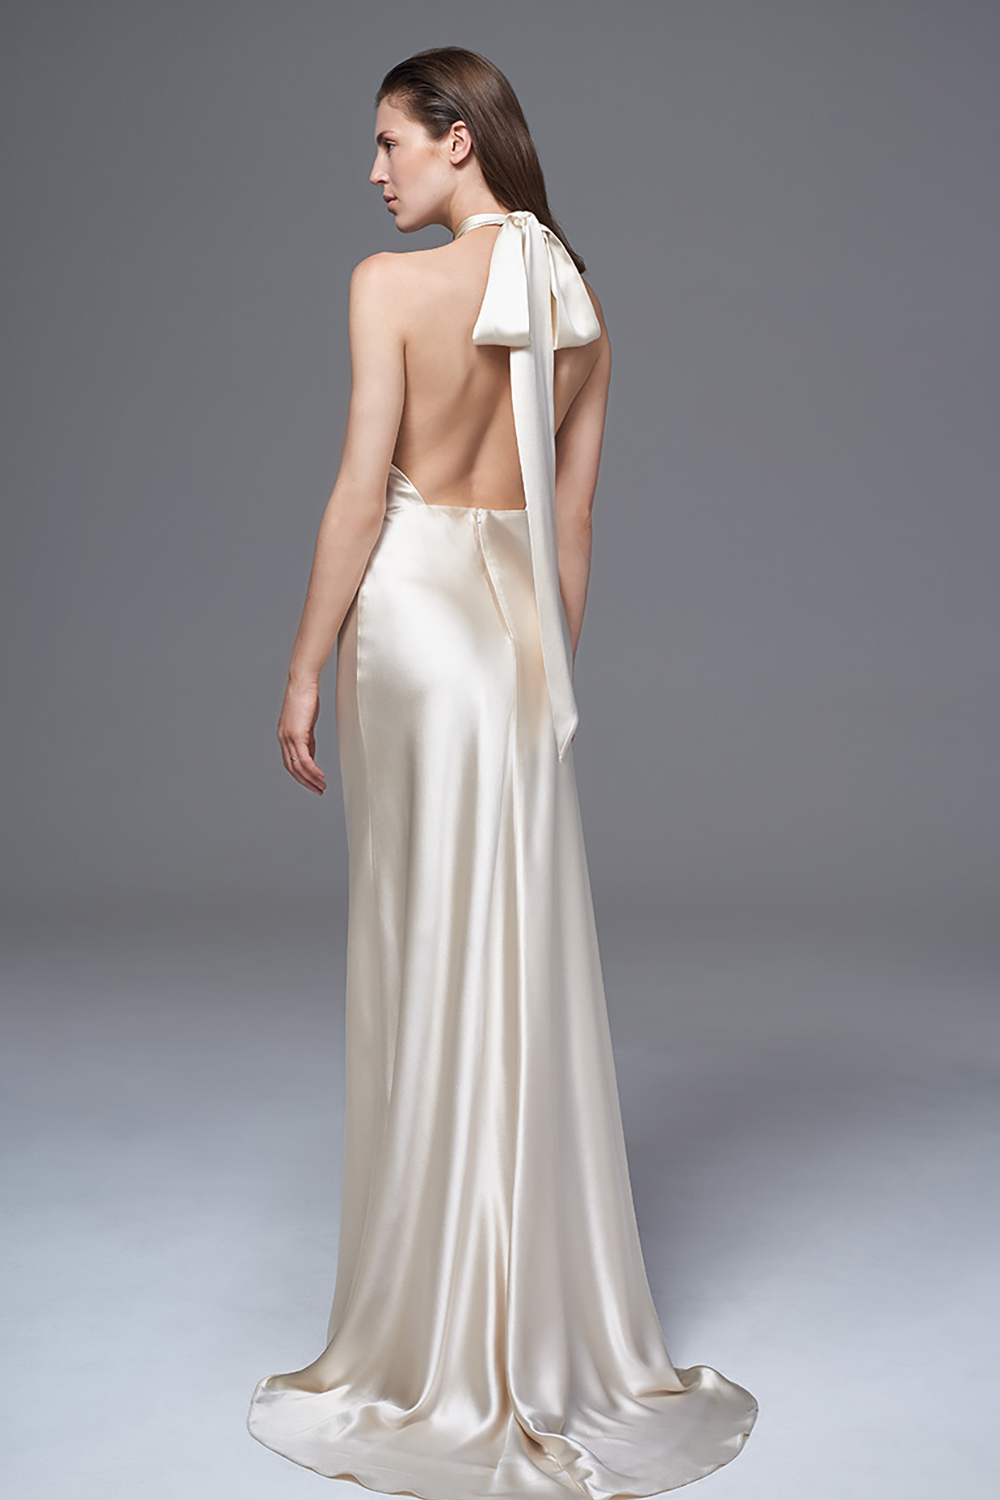 THE CHERYL BACKLESS DRESS WITH SATIN NECK TIE FITTED SKIRT AND PUDDLE TRAIN. BRIDAL WEDDING DRESS BY HALFPENNY LONDON